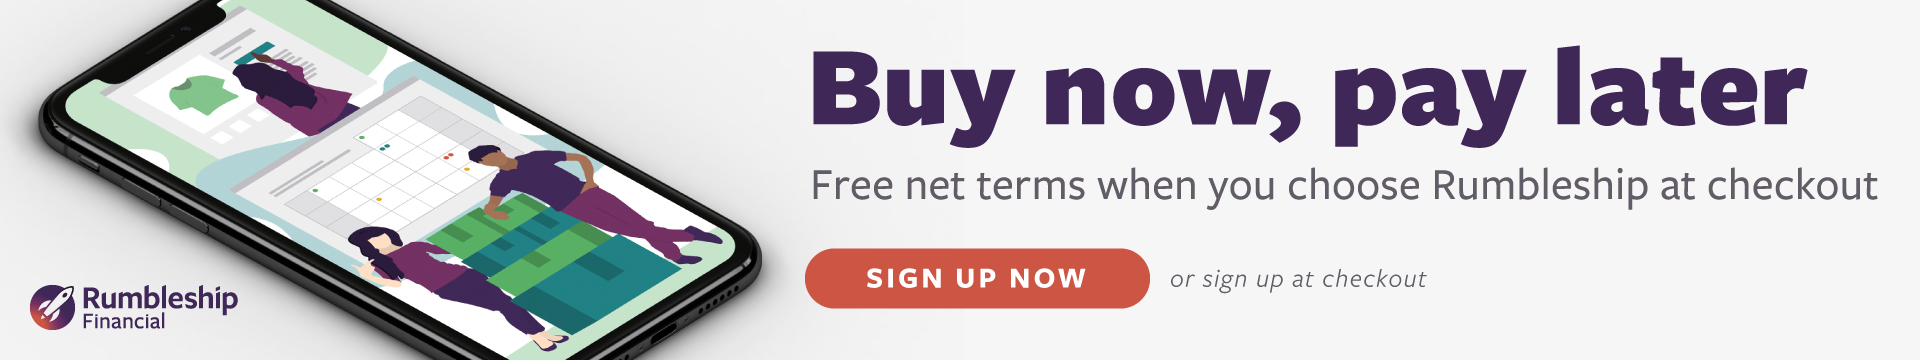 Buy now, pay later. Free net terms when you choose Rumbleship at checkout. Sign up now or sign up at checkout.